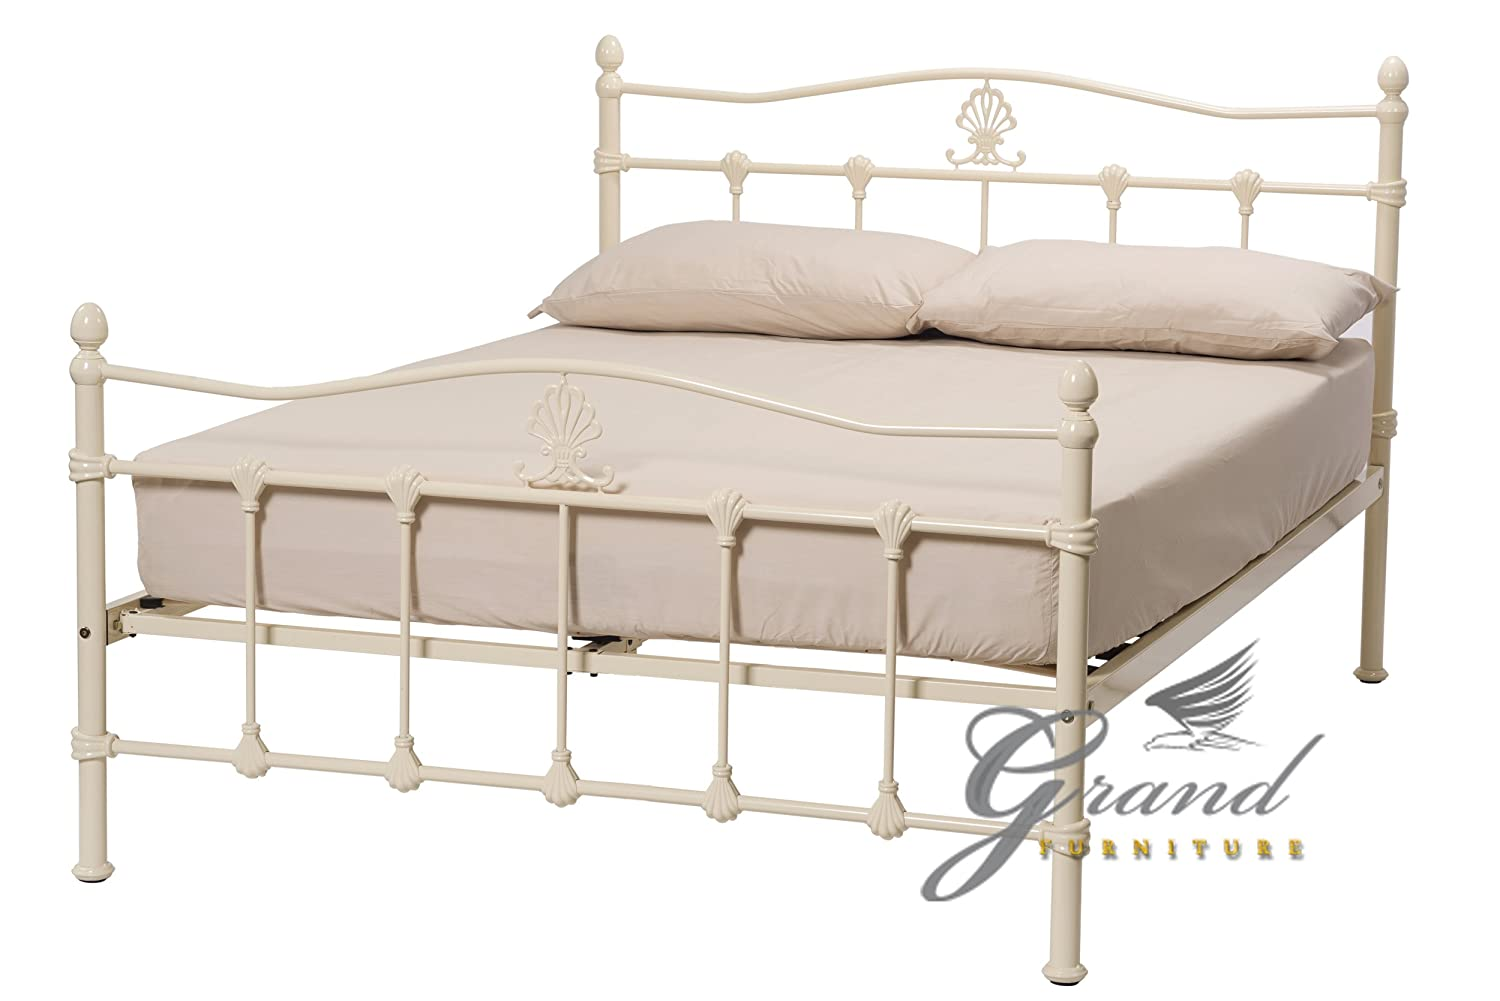 Exclusive Boston Victorian Style Cream Metal Bed Frames Double 4FT6 Retro Antique Bedsteads ROYALE COMFORT